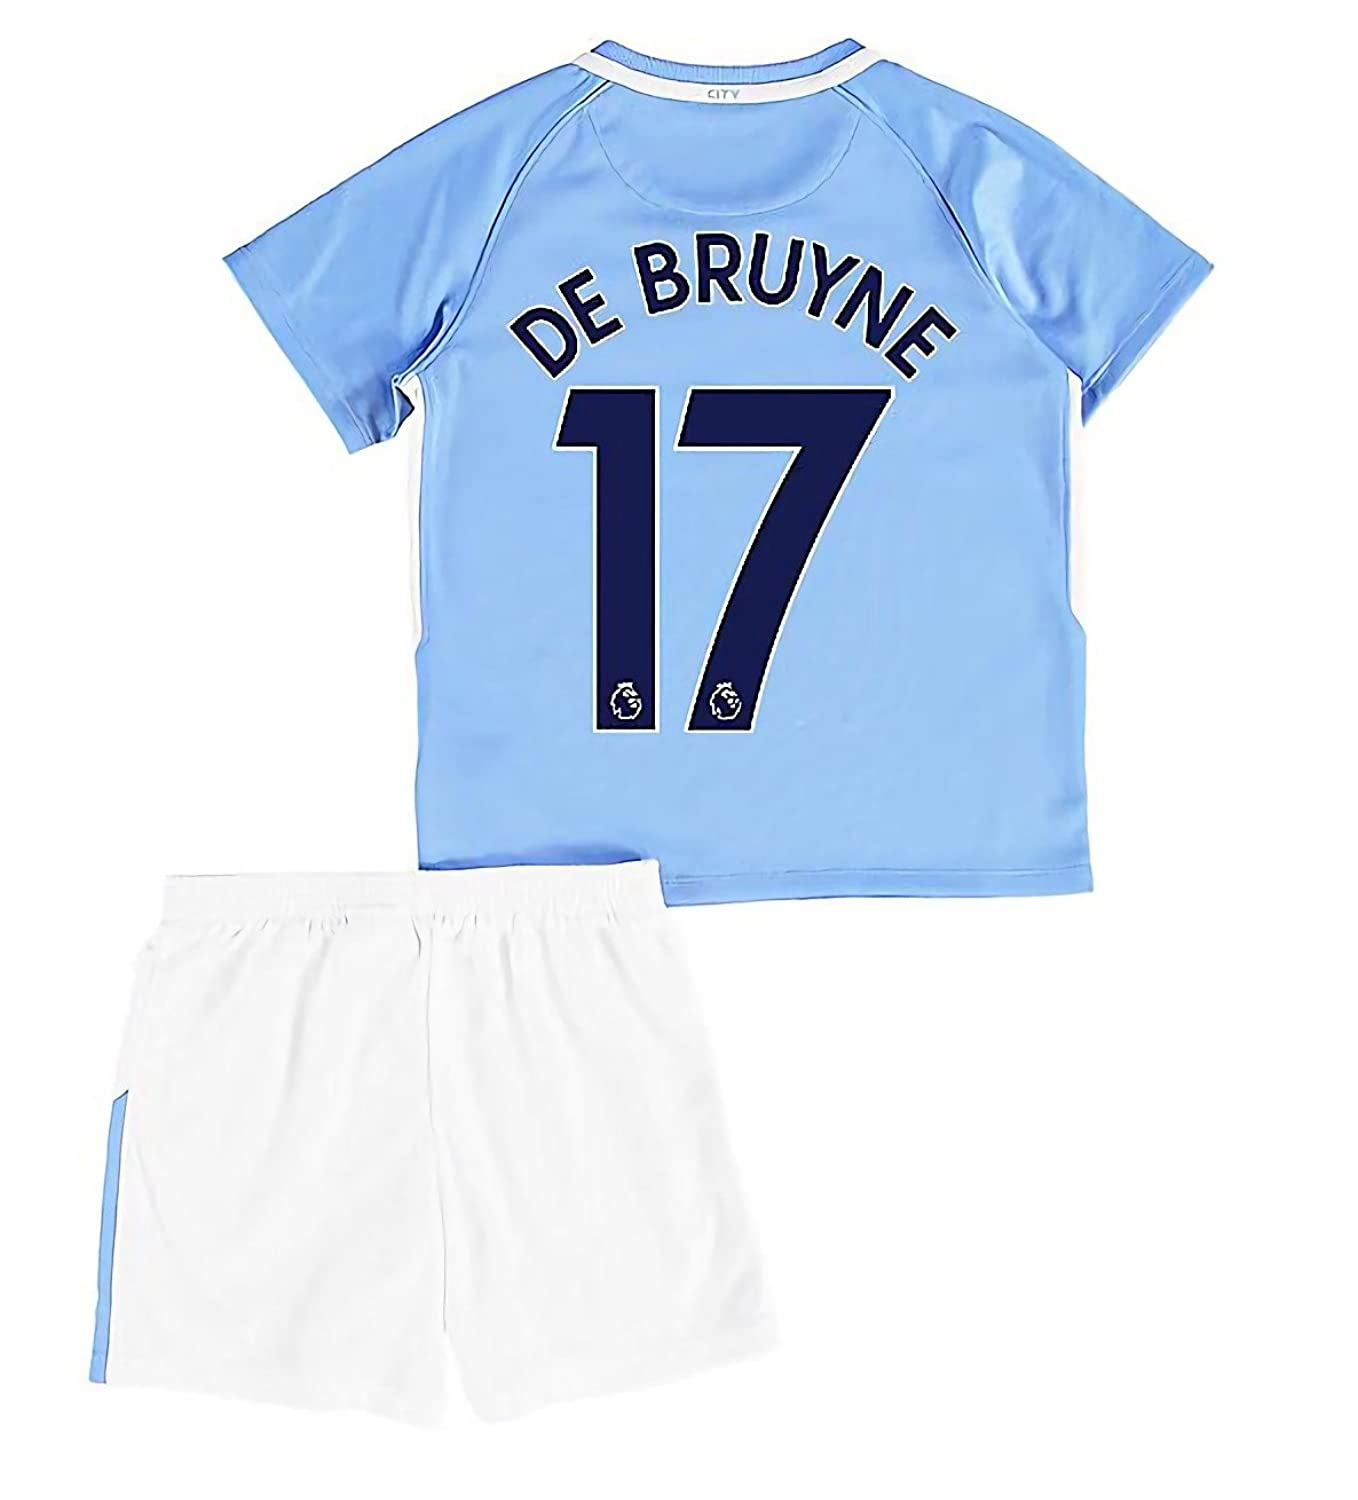 check out c3d5c 78509 2017/2018 Manchester City DE Bruyne #17 Kids/Youths Home ...